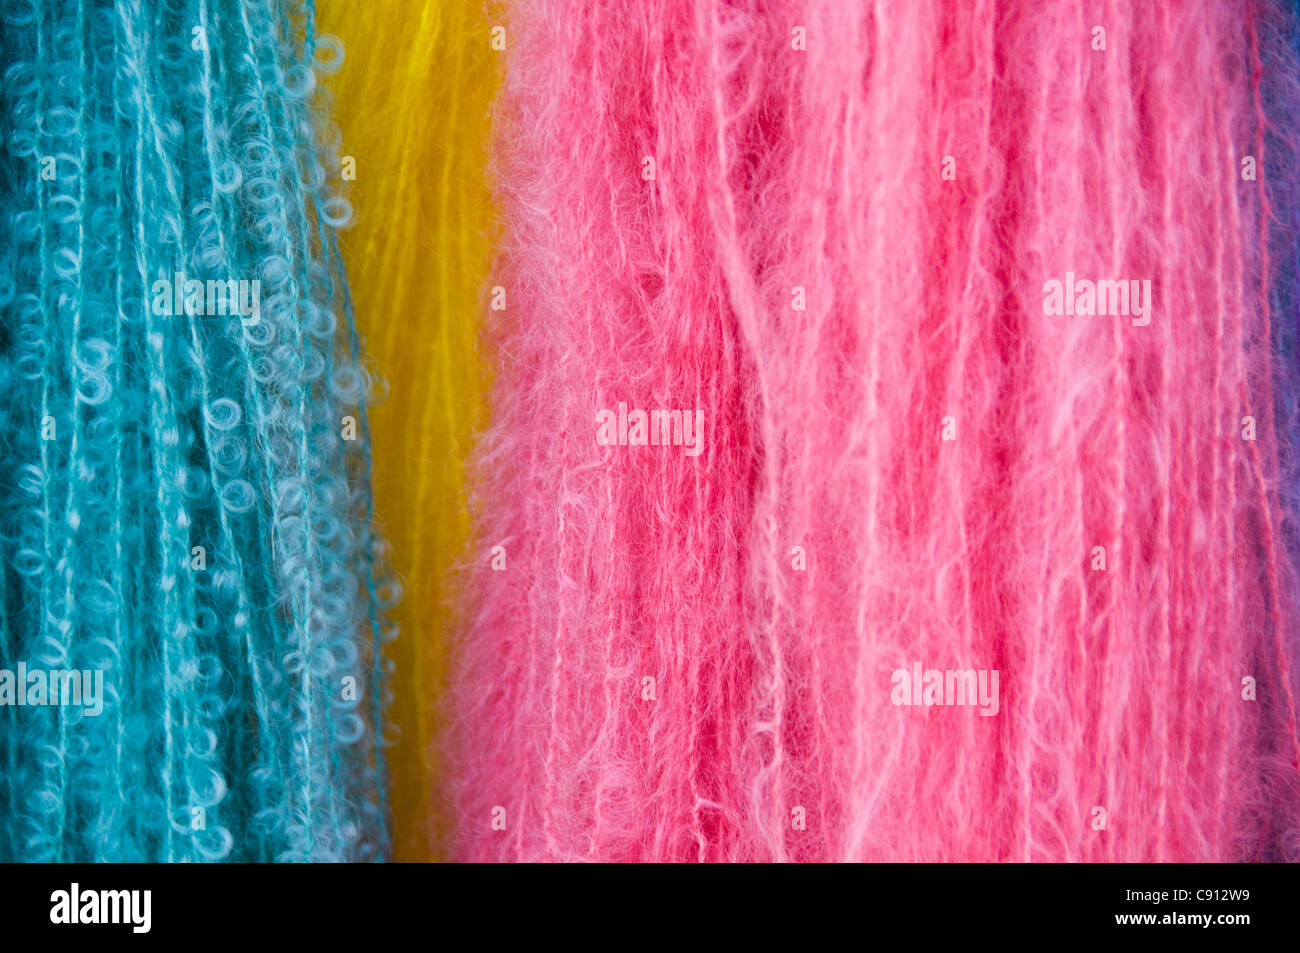 Mohair wool from different colors - Stock Image